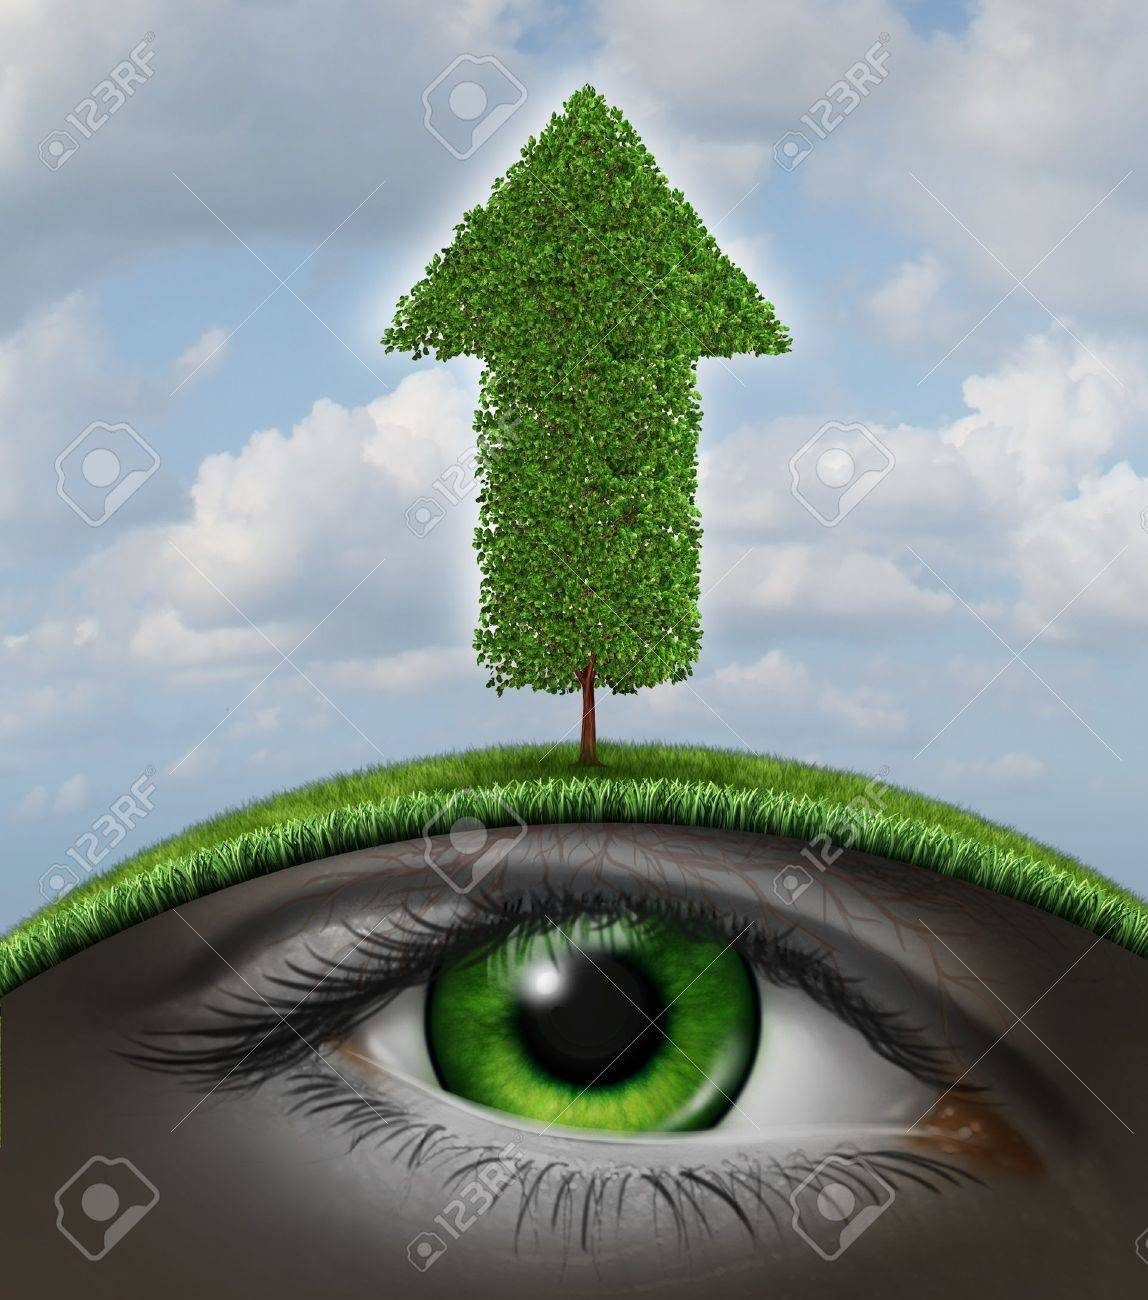 Growth vision business concept as a tree in the shape of an upward arrow and a human eye underground growing in the roots as a symbol of investment success with seed money for new financial ventures Stock Photo - 21492138